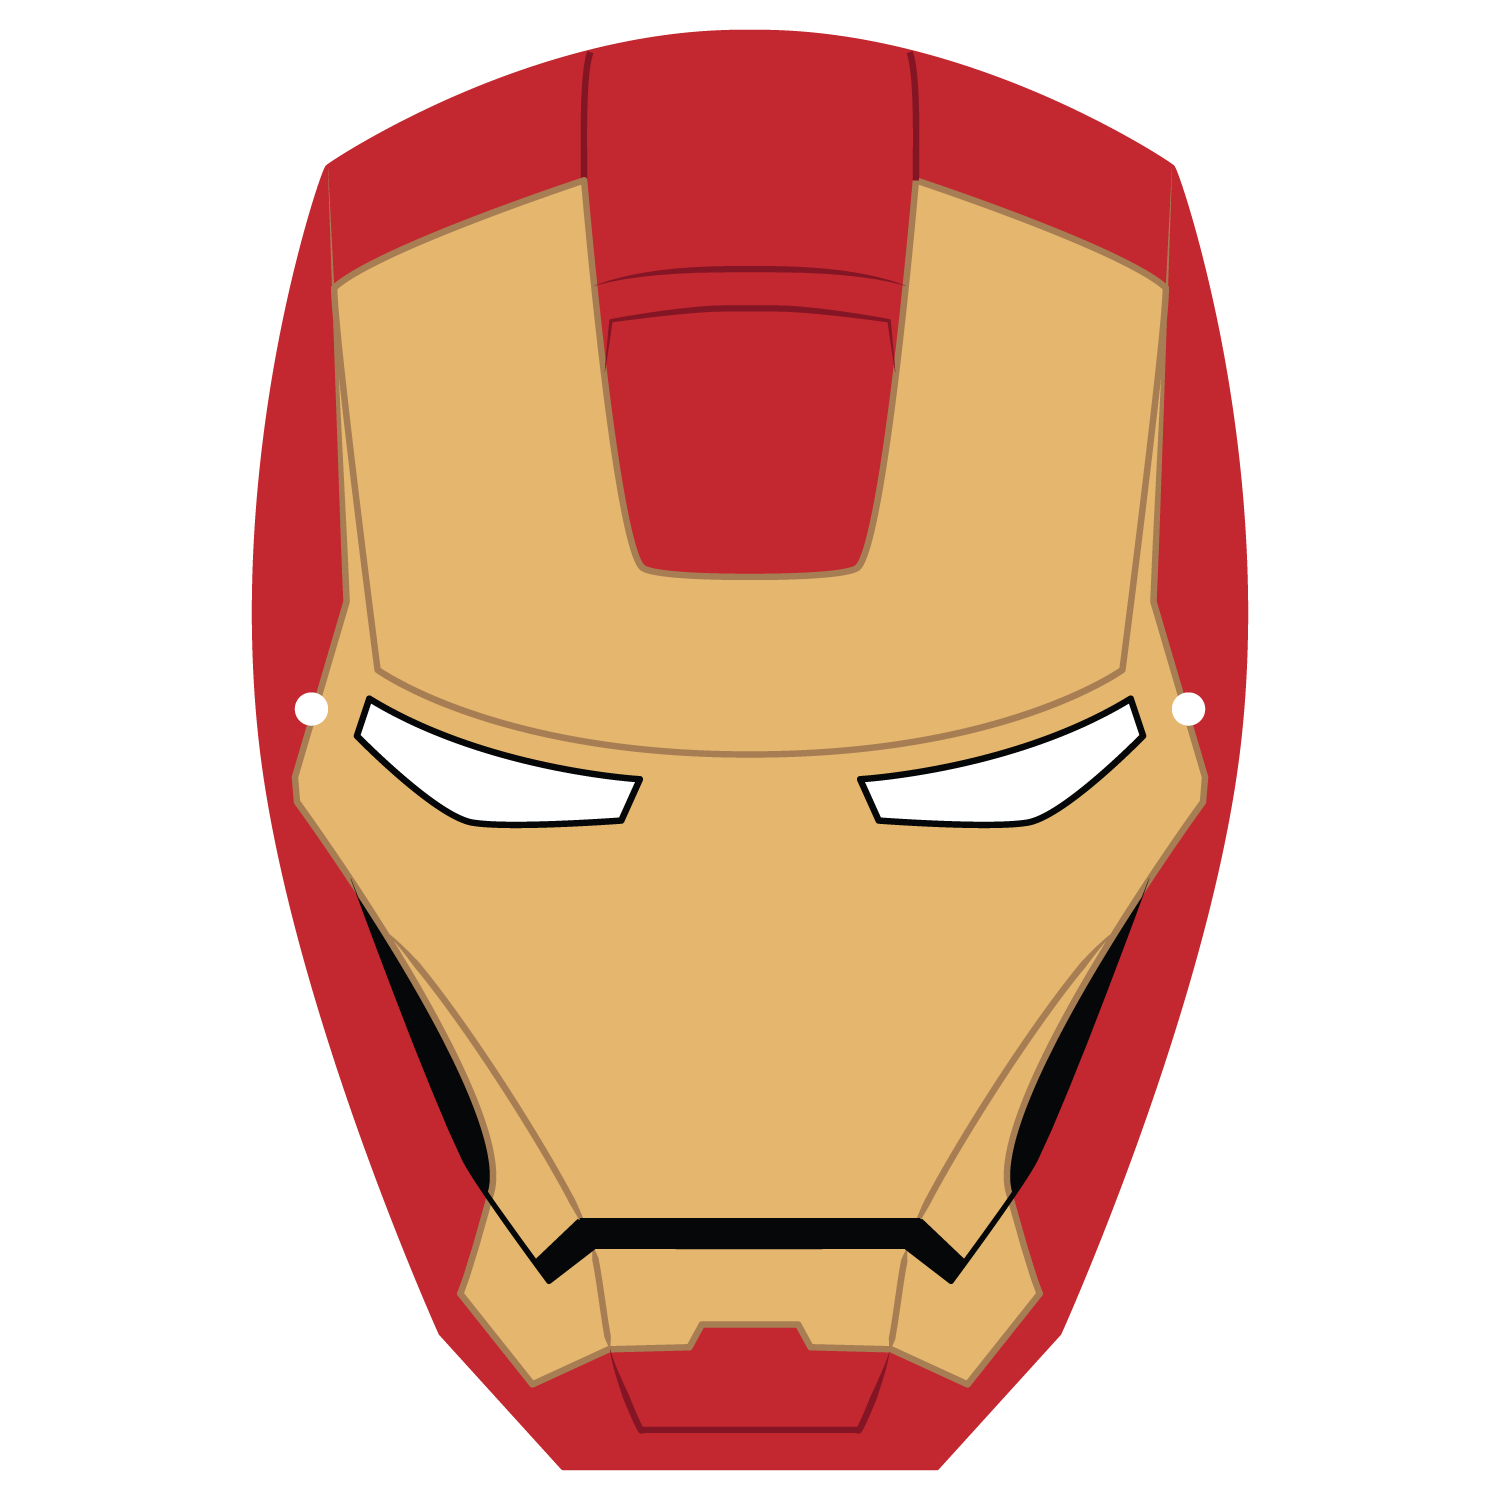 Ironman Mask Template | Free Printable Papercraft Templates - Free Printable Ironman Mask